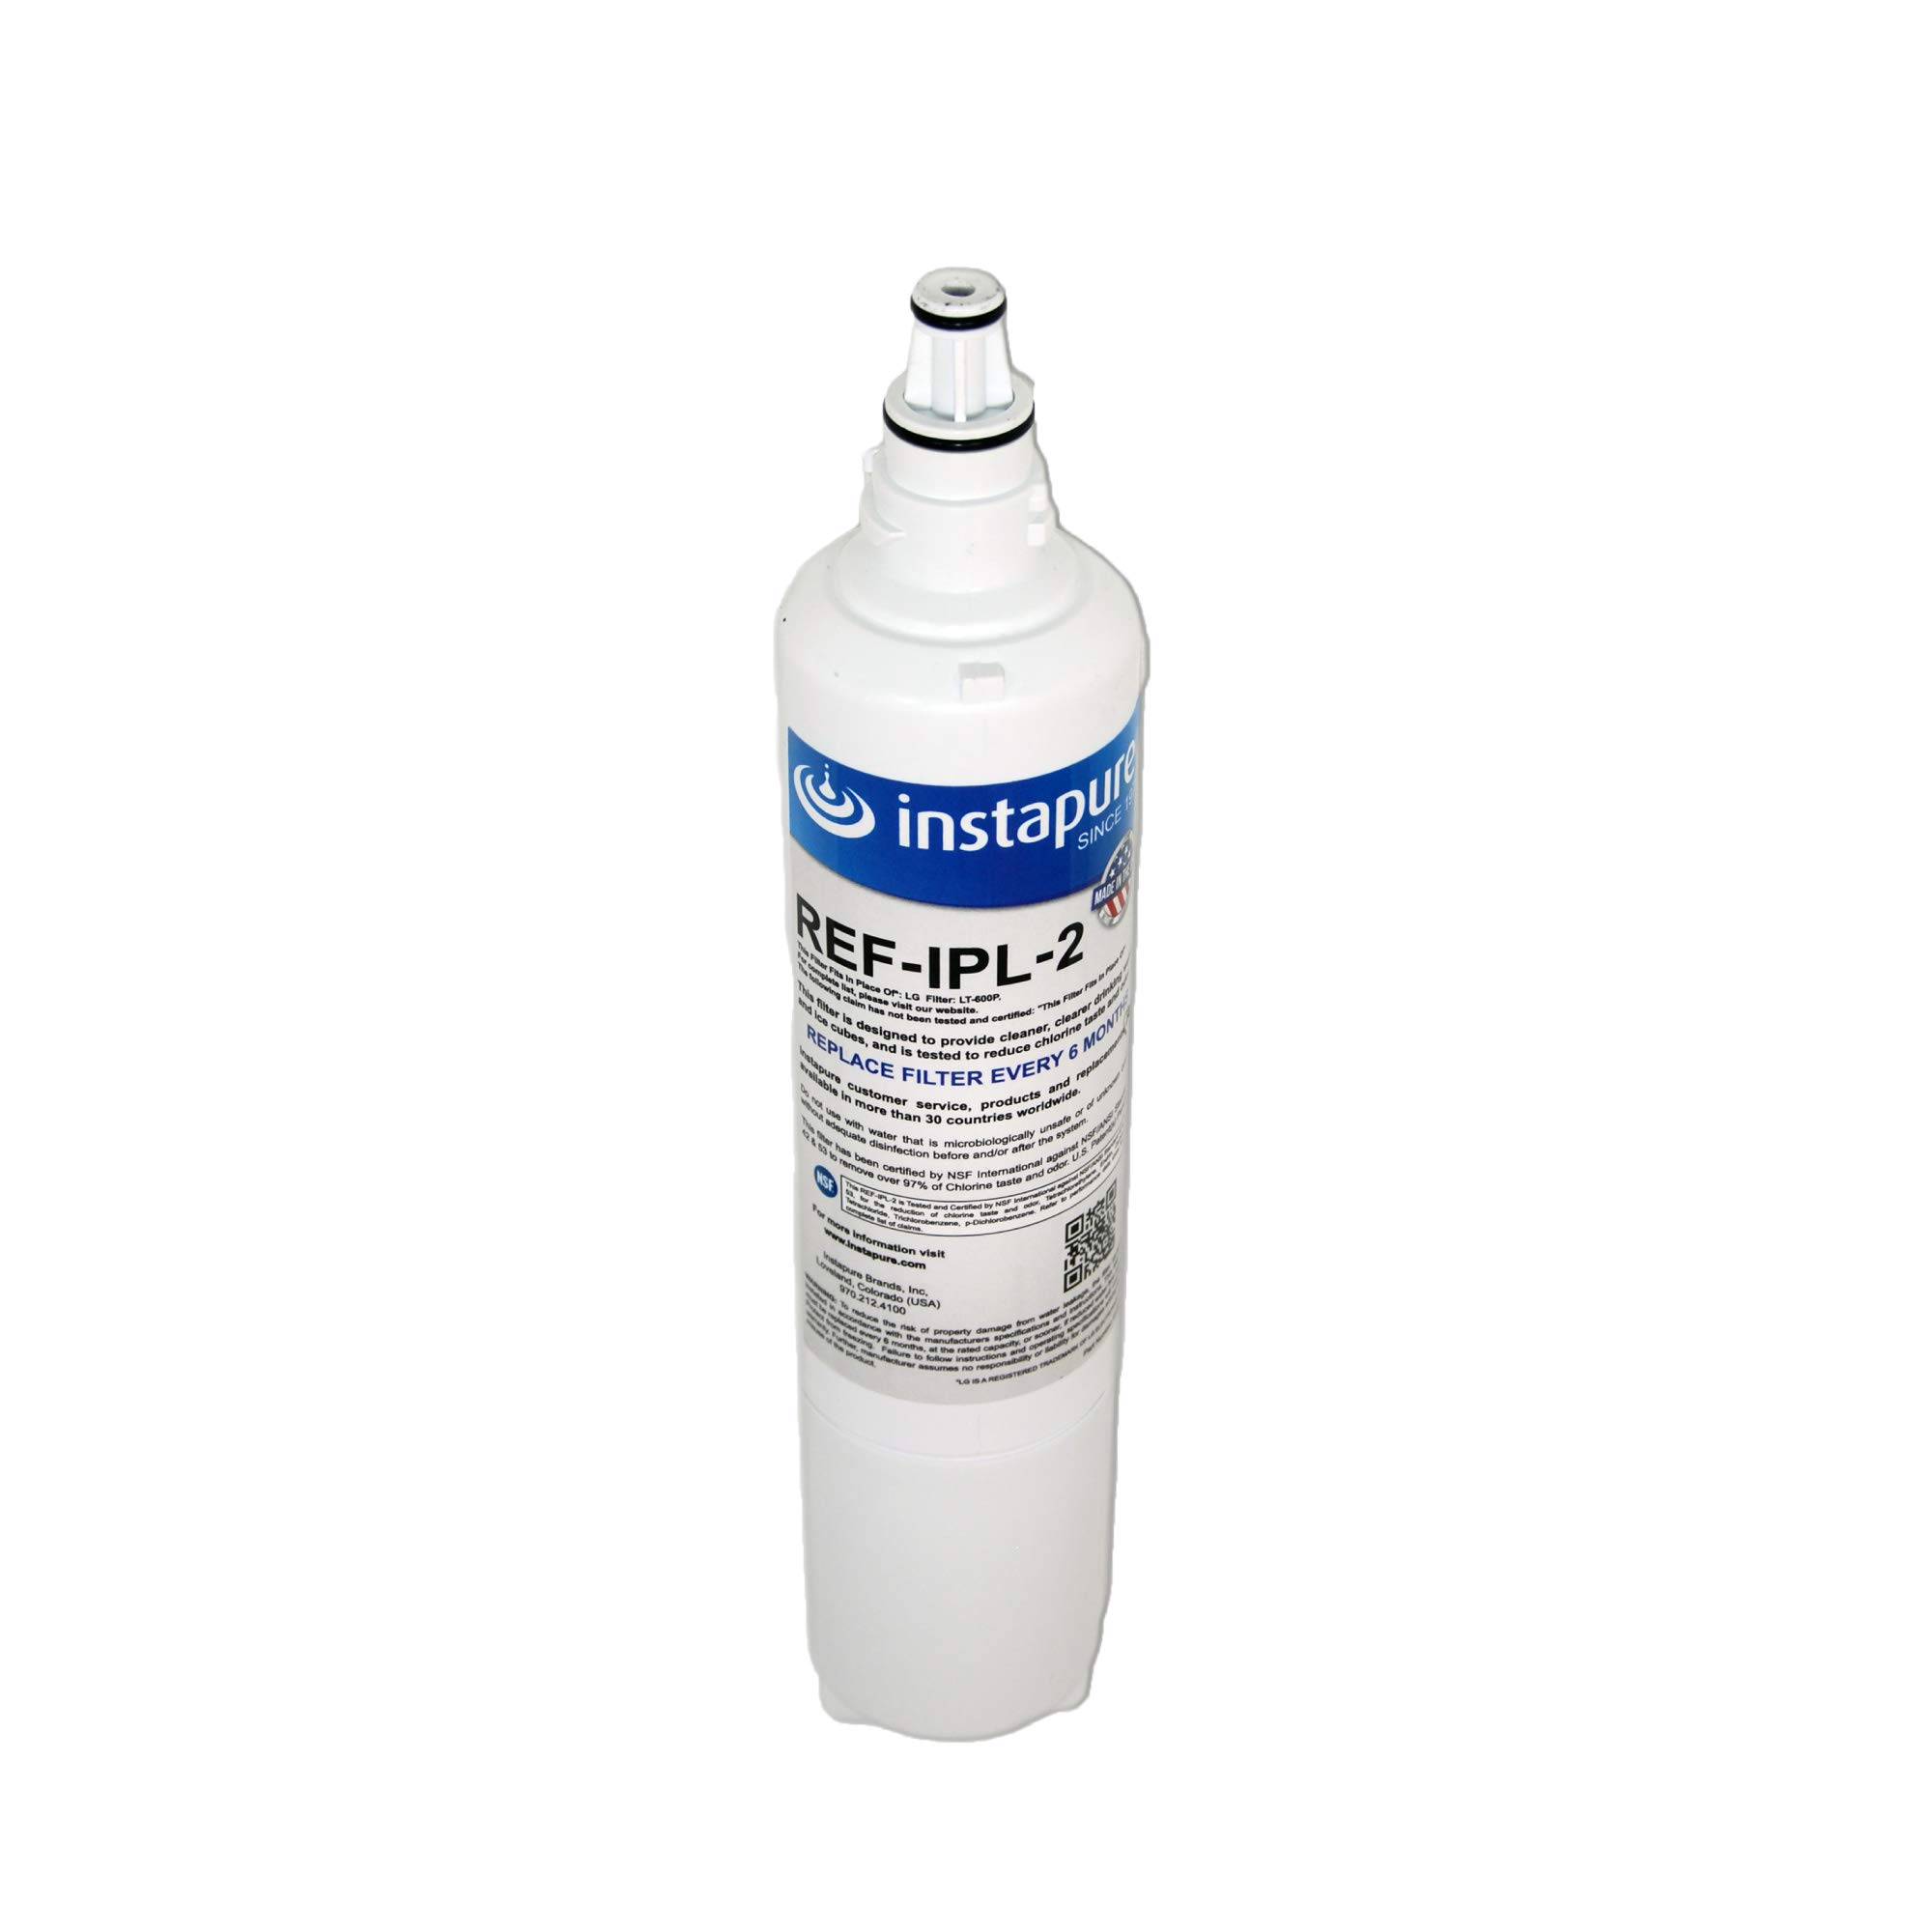 Instapure REF-IPL-2 ULTRA Refrigerator Filter, MADE IN USA, Compatible with LG LT600P, LG 5231JA2006B, and more, Tested & Certified by NSF to ANSI/NSF 42 & 53